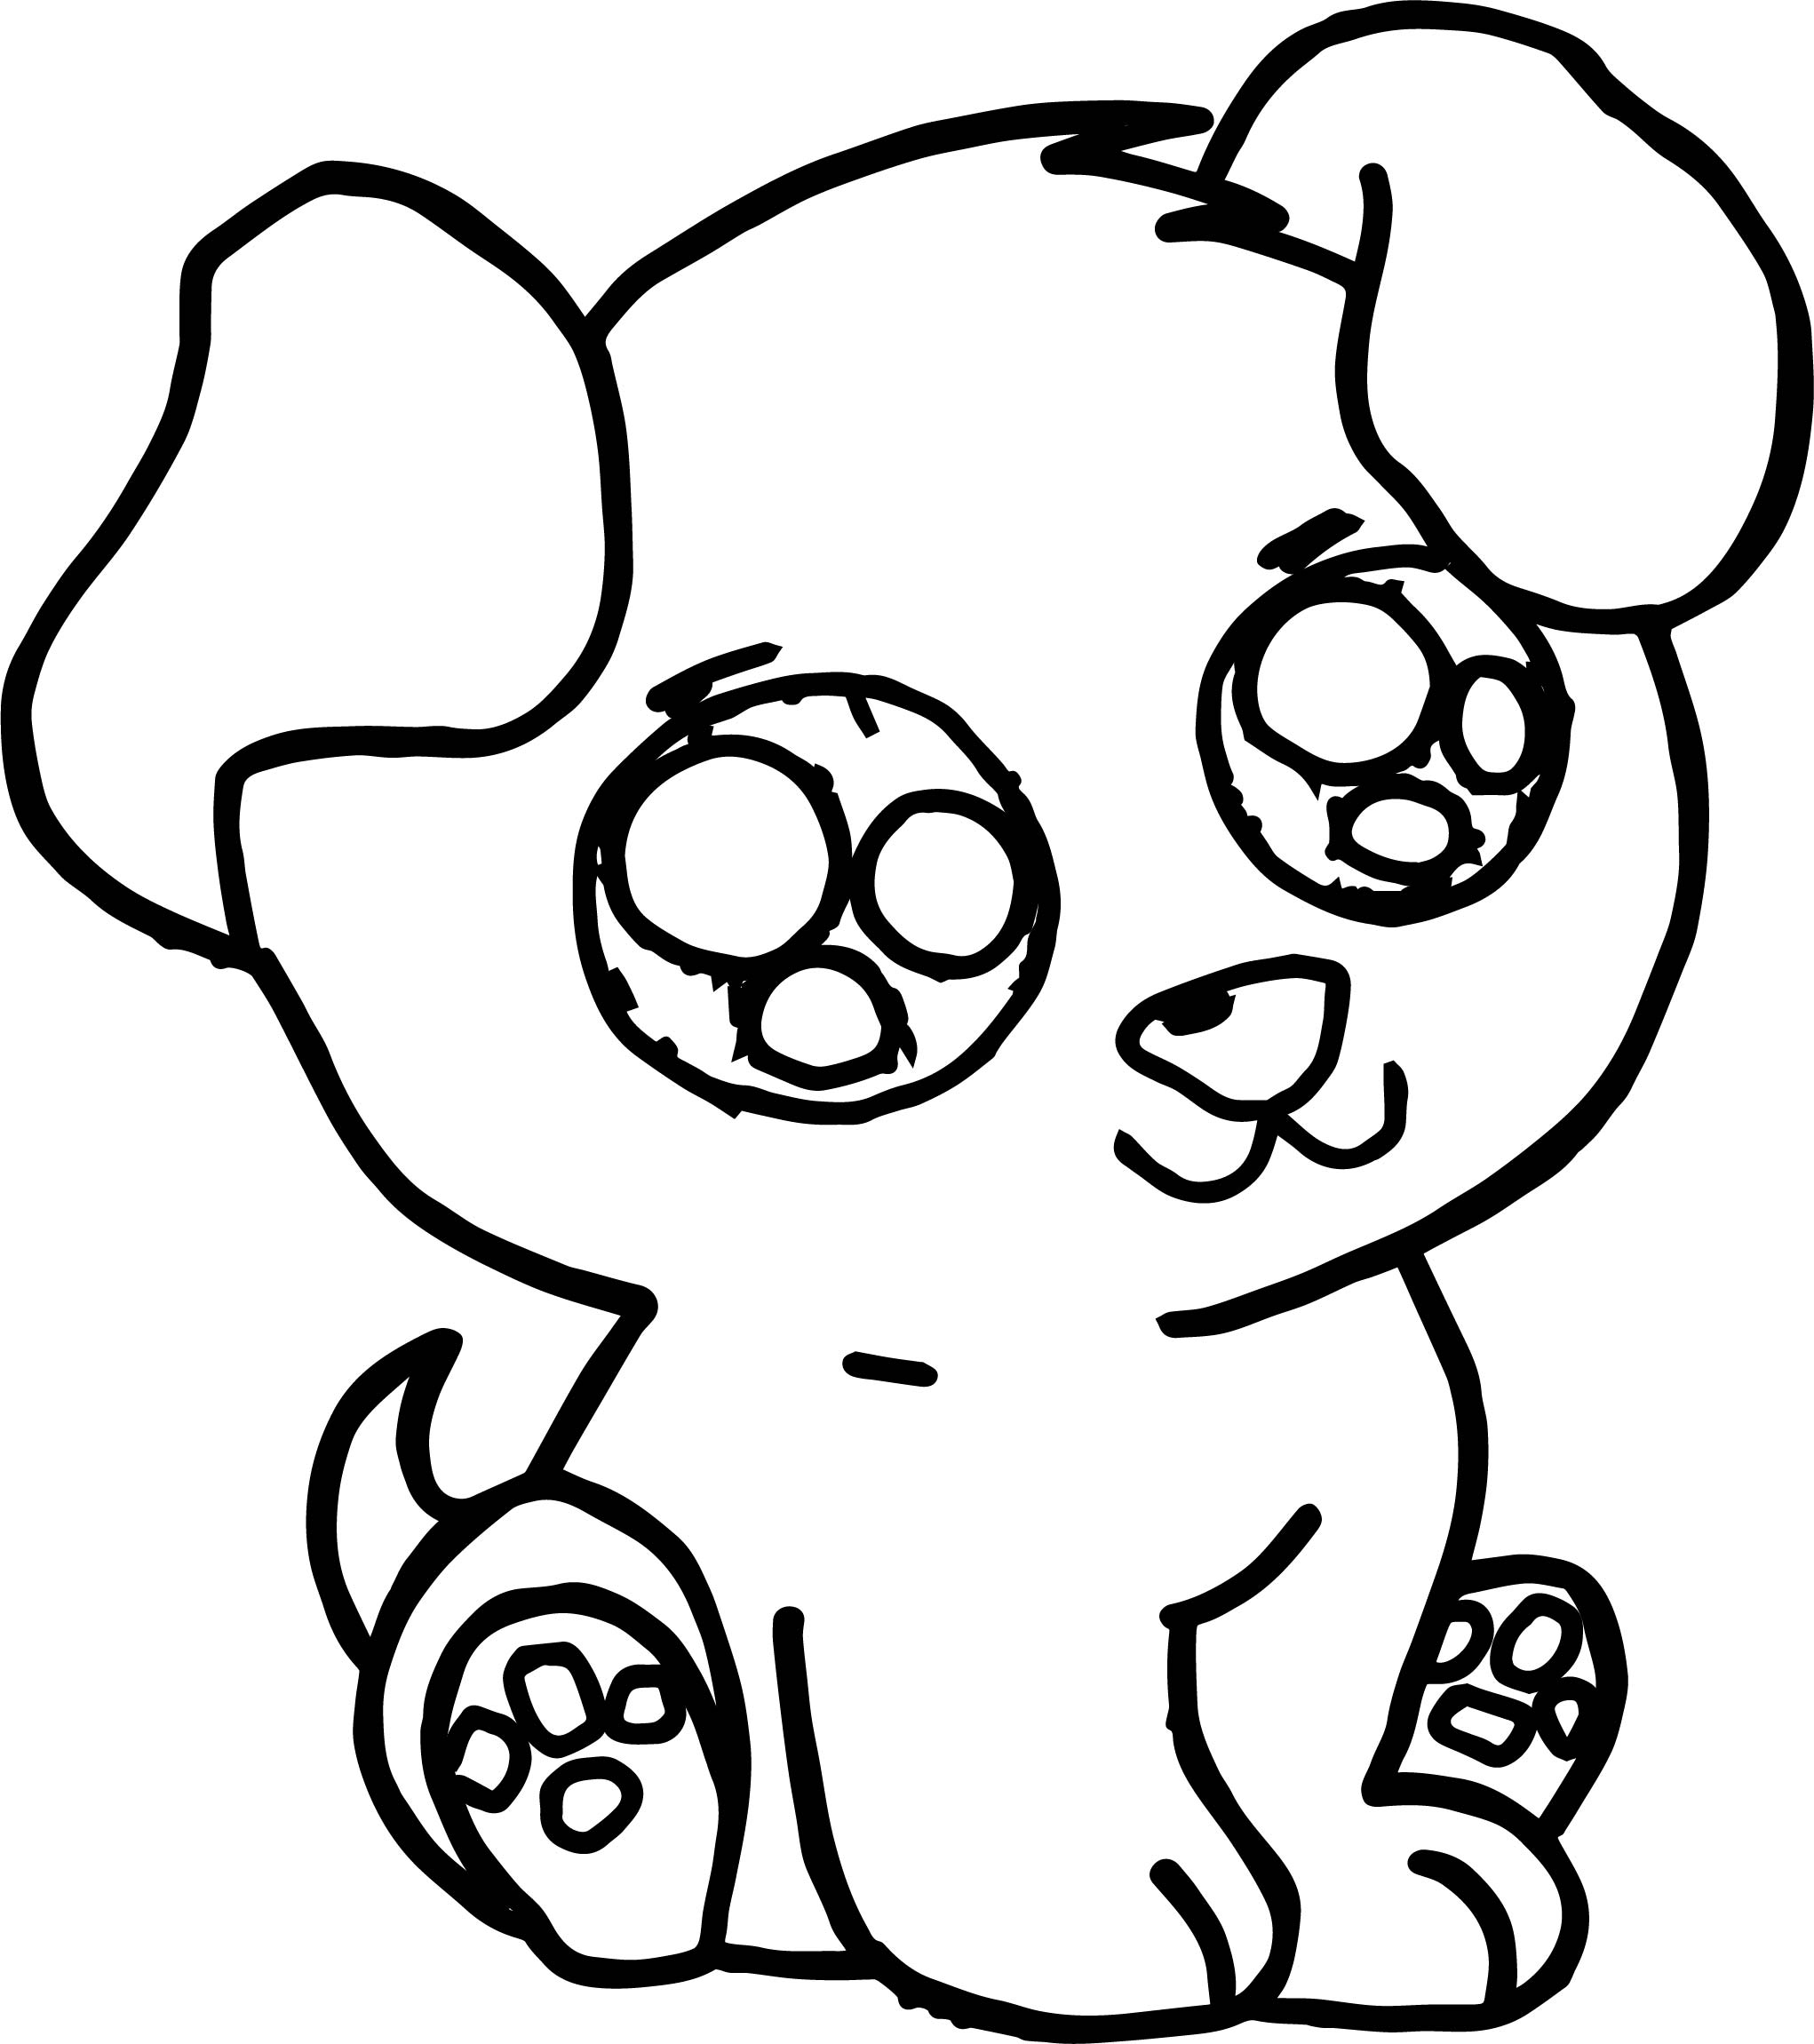 Puppy Dog Coloring Pages Cute Puppy Free Images Puppy Dog Coloring Page Wecoloringpage